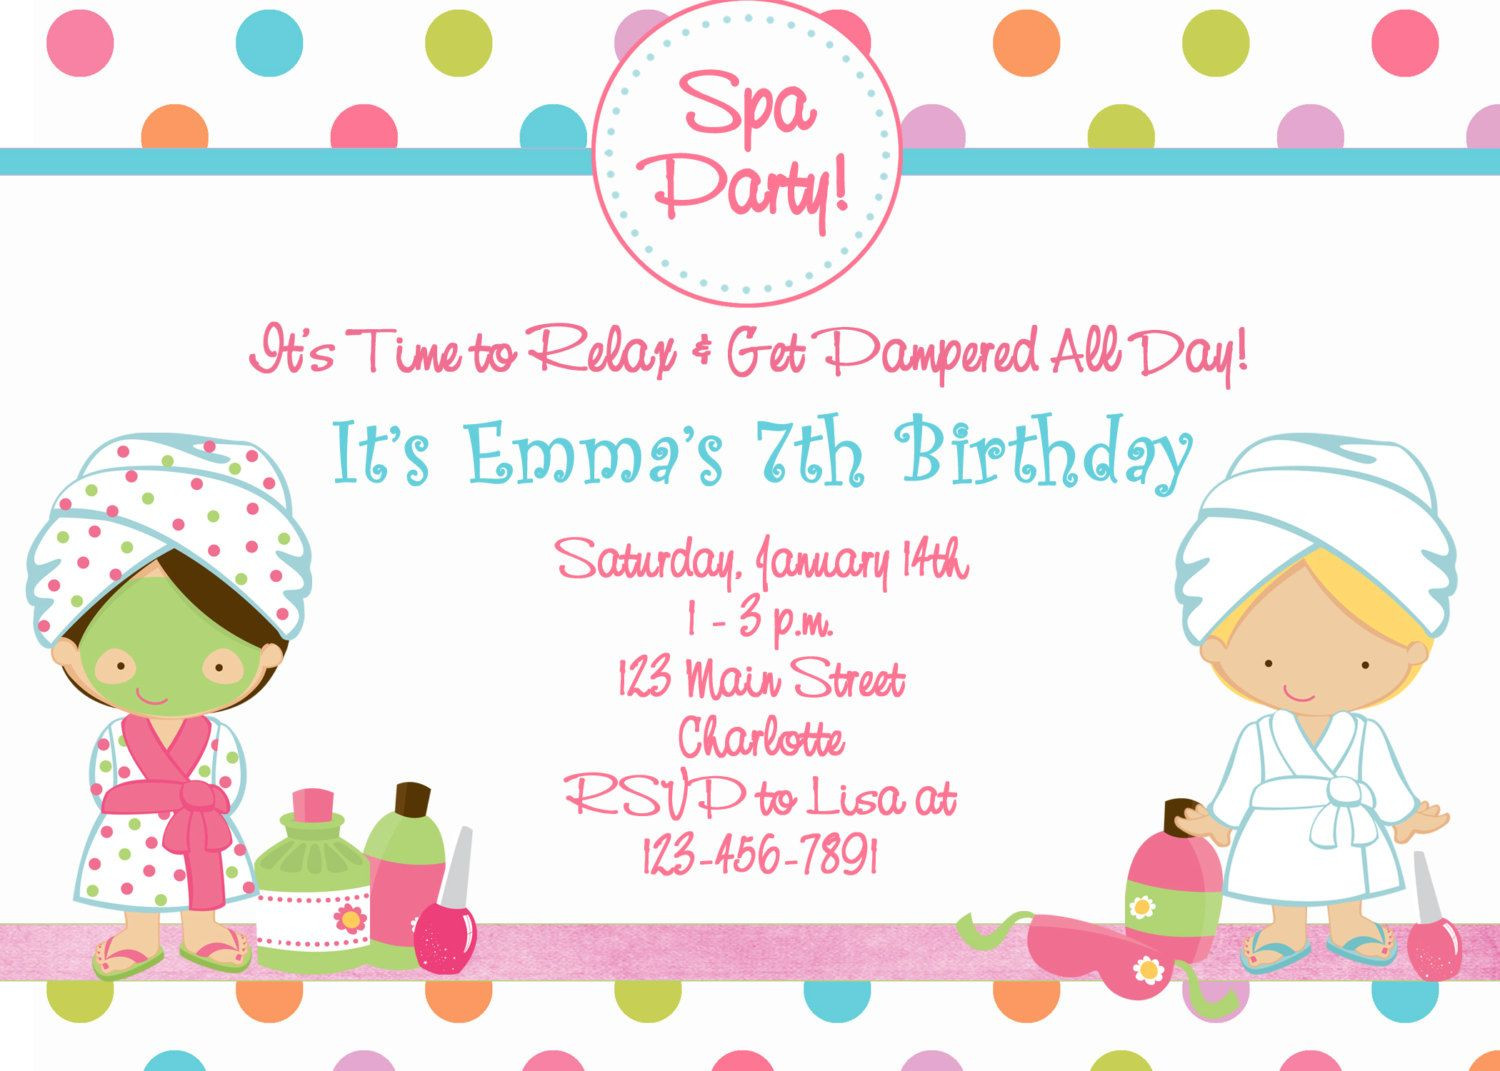 Best ideas about Spa Birthday Invitations . Save or Pin Free Printable Spa Birthday Party Invitations Now.